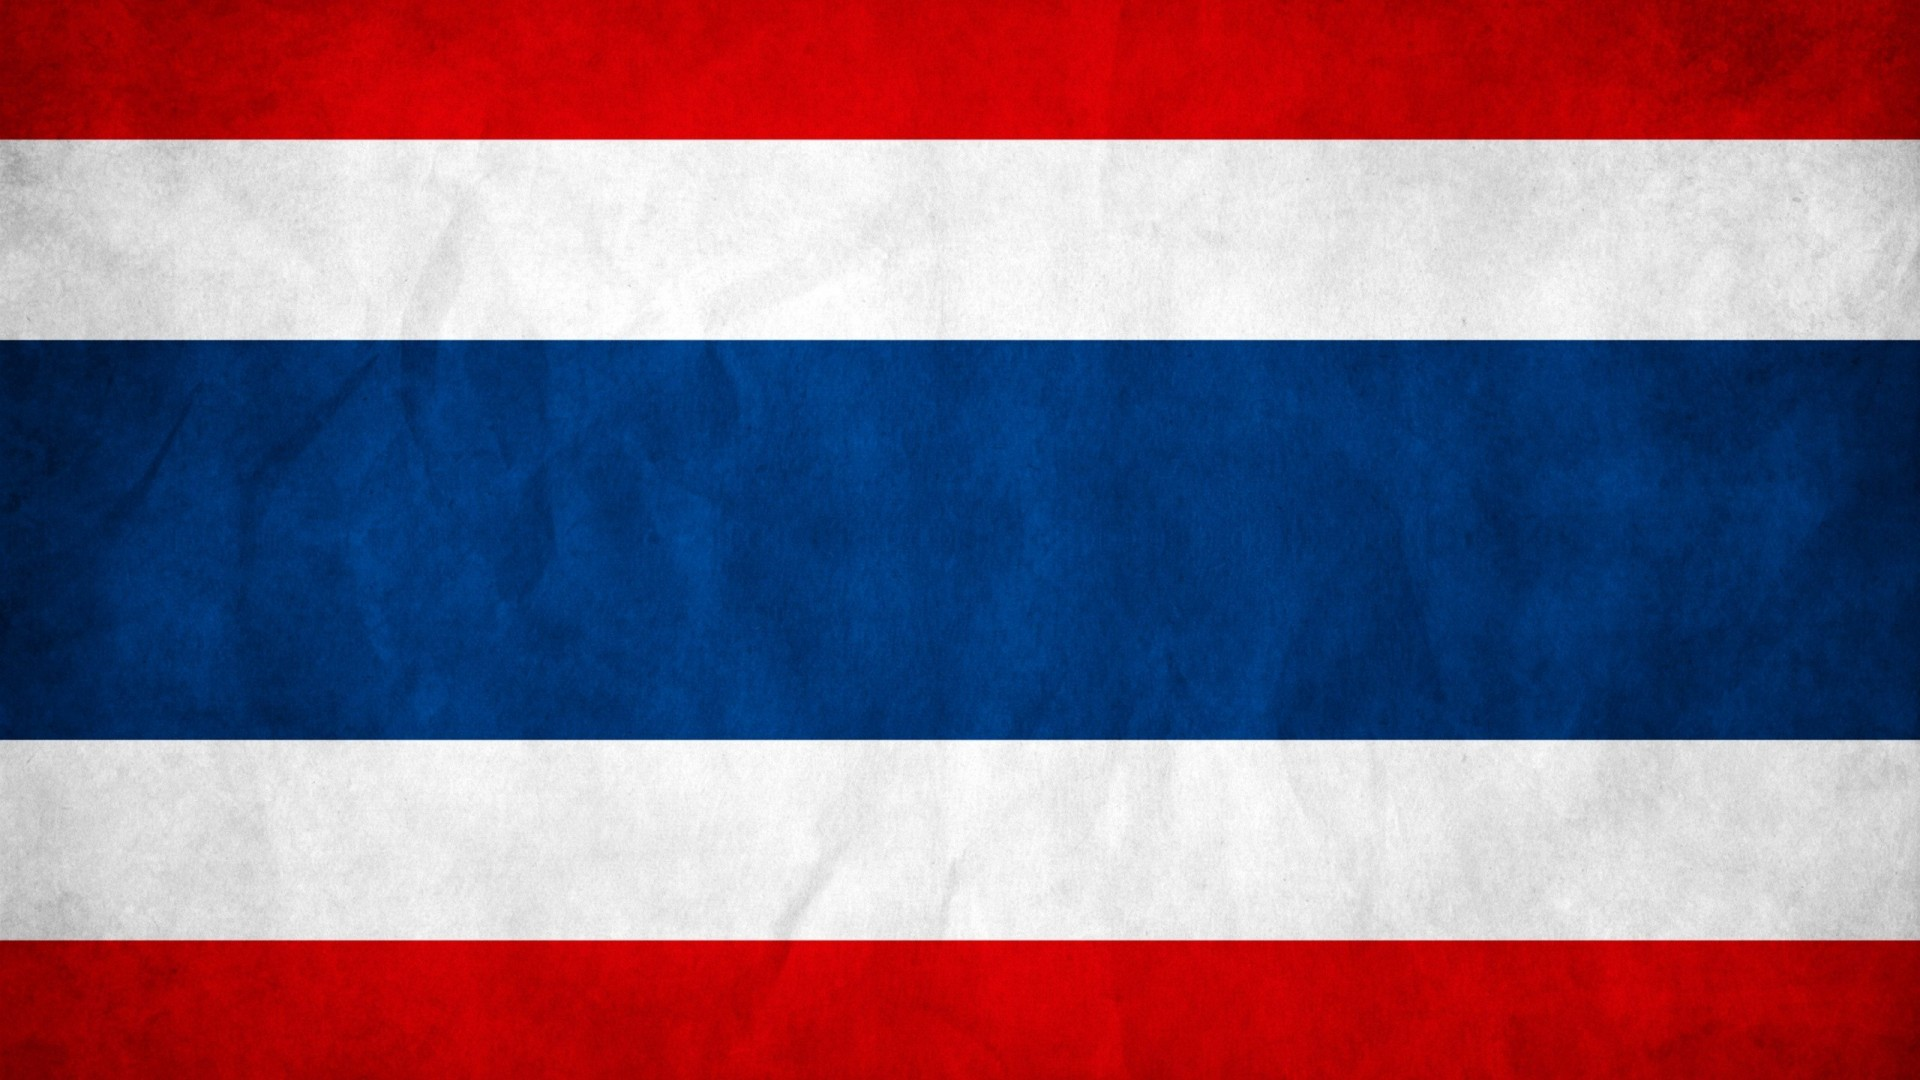 Thailand Flag Wallpaper